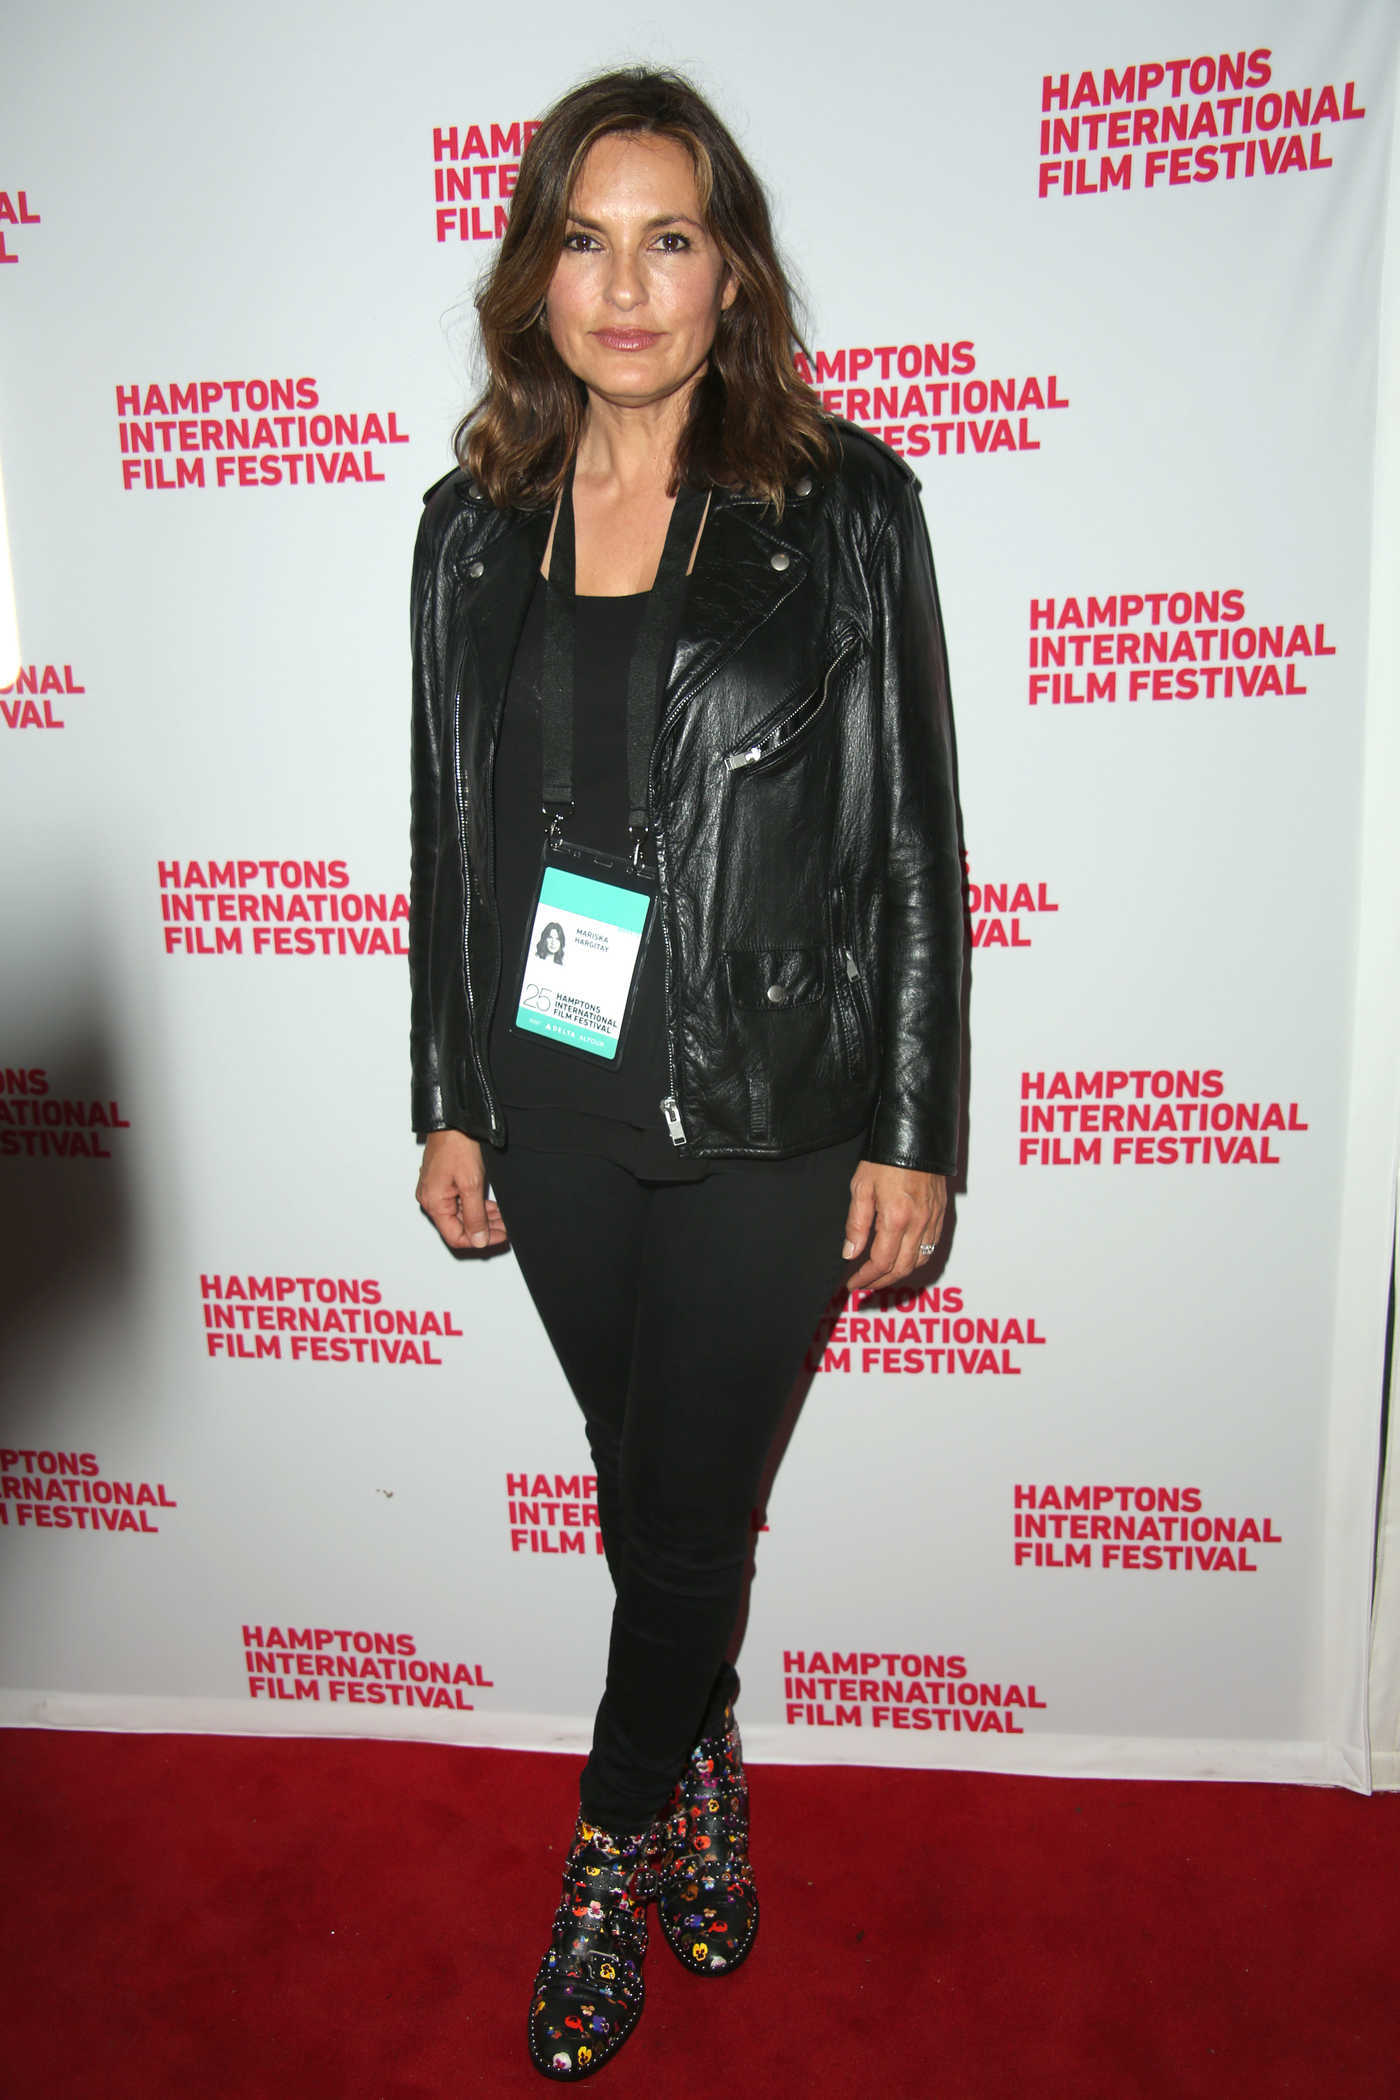 Mariska Hargitay at the Hamptons international film Festival in New York 10/08/2017